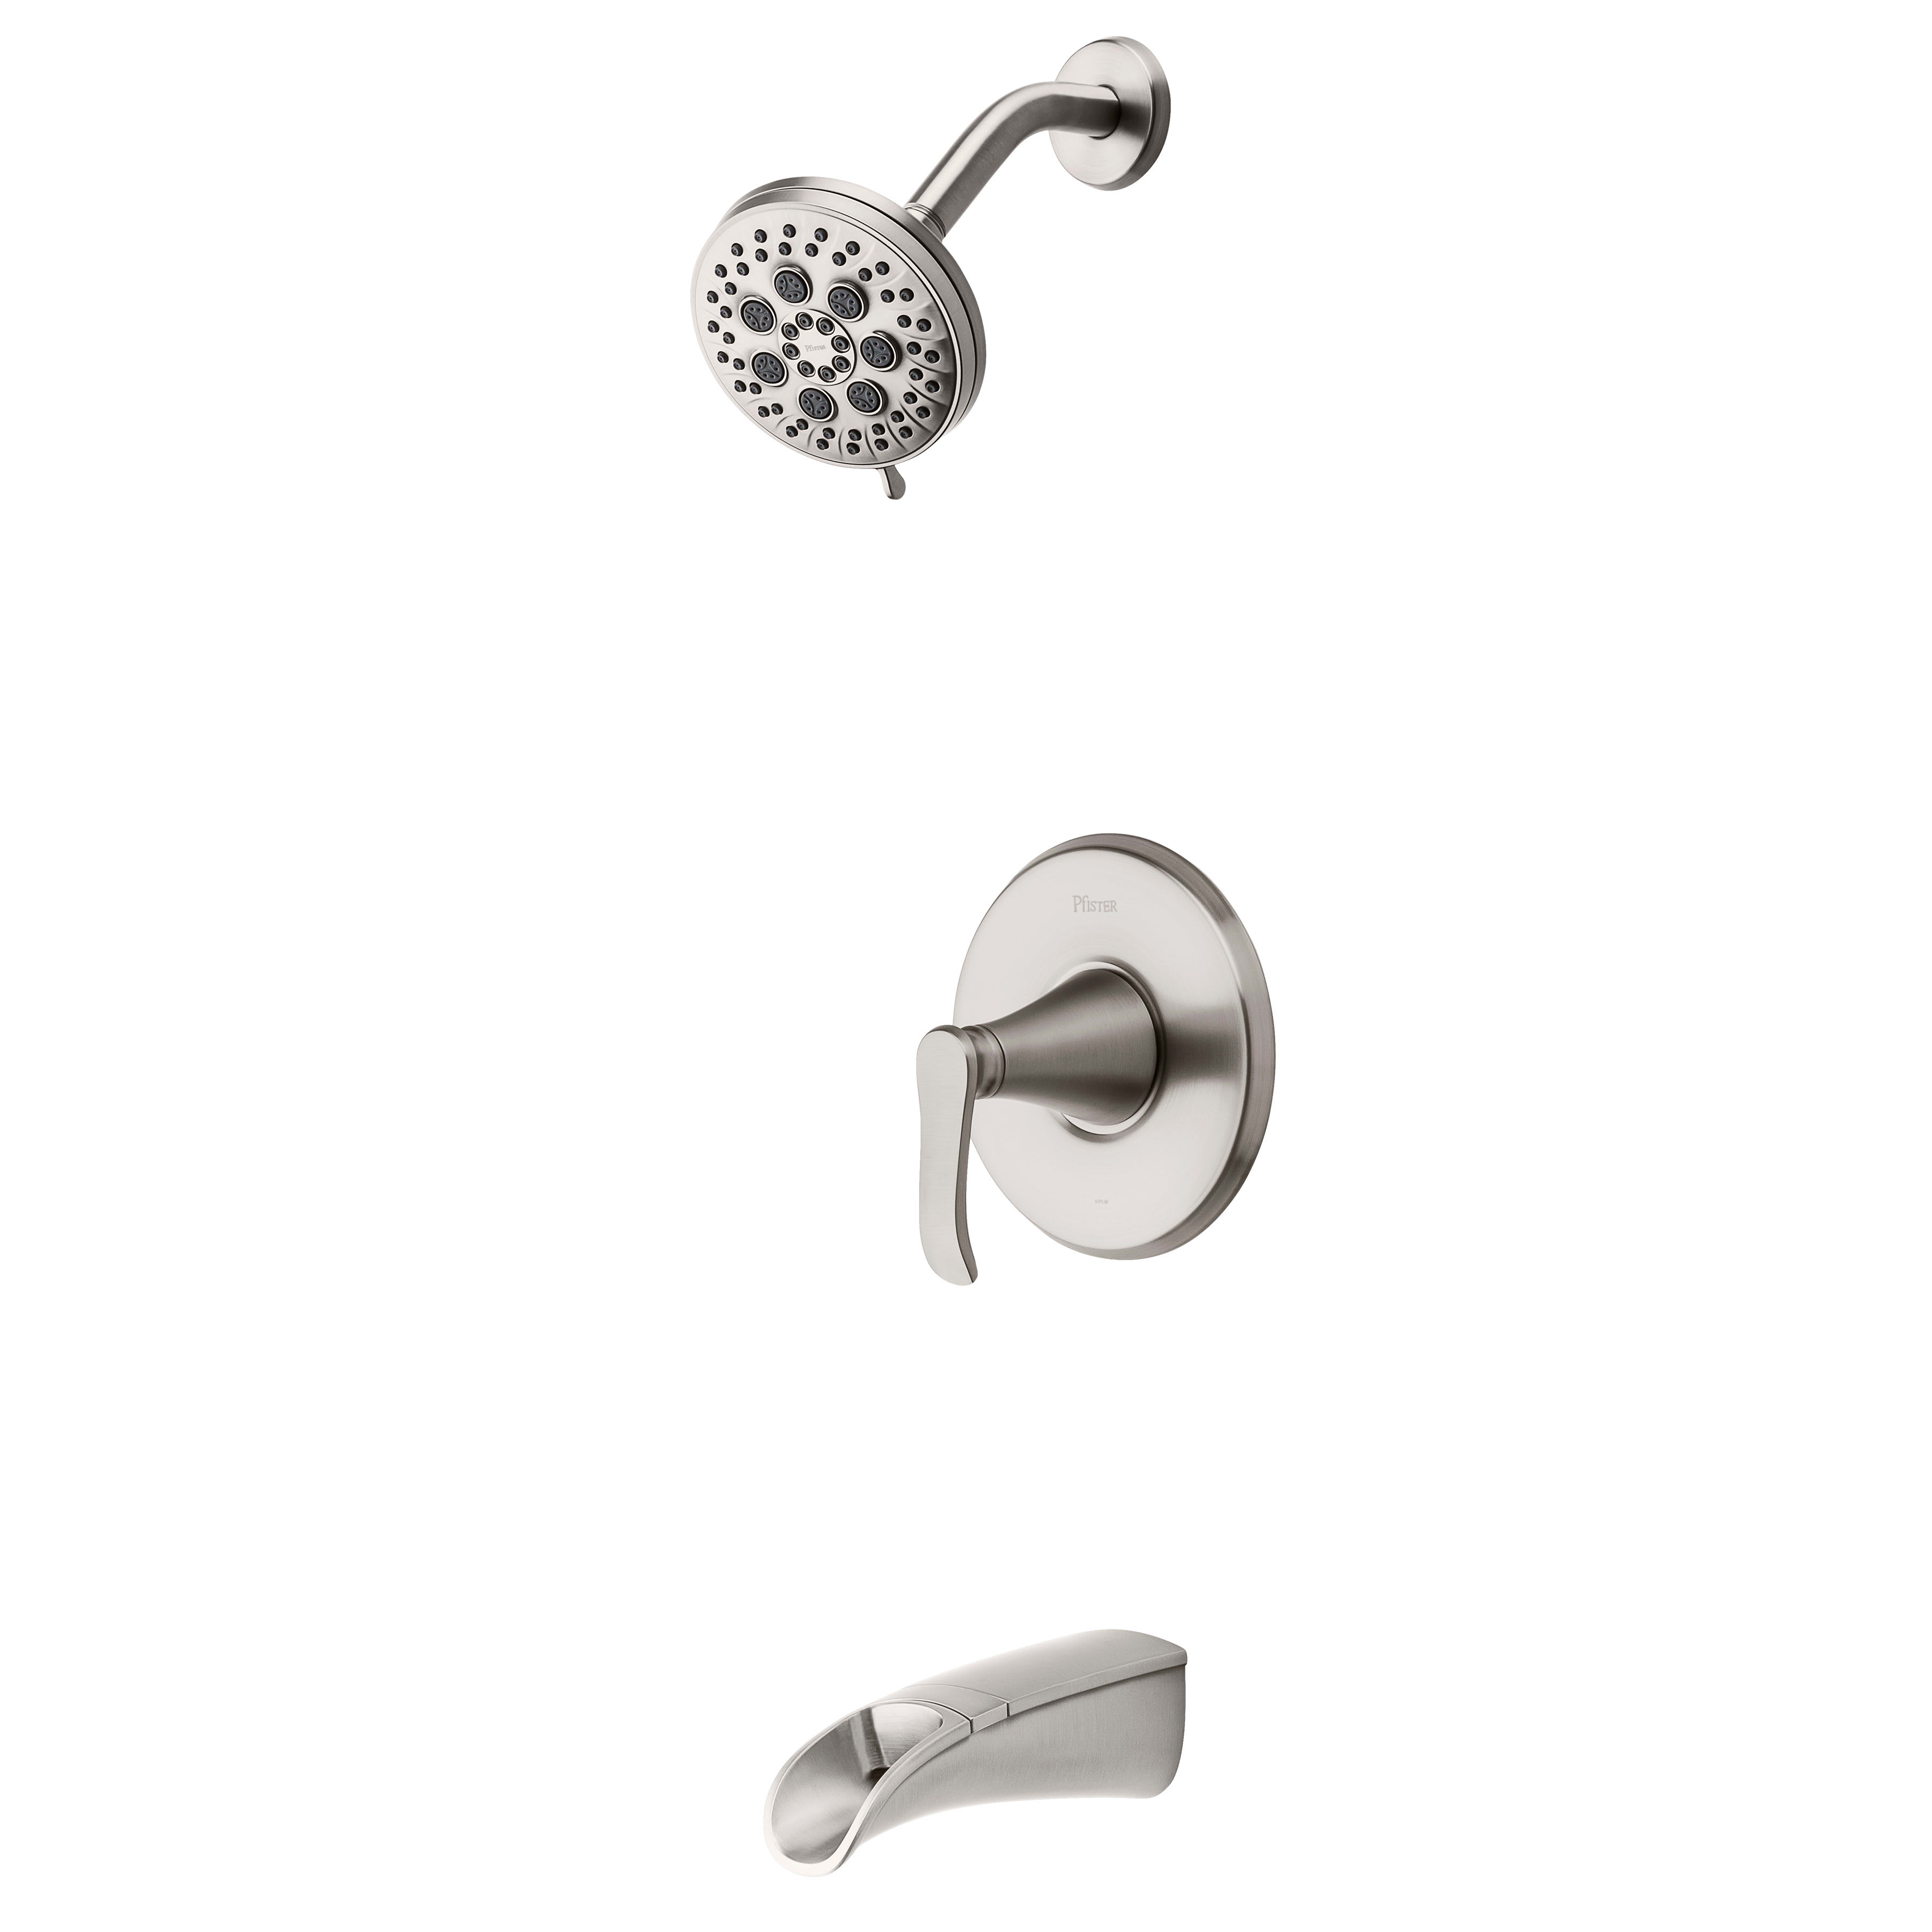 Pfister 8p8 Ws2 Jdsgs Spot Defense Brushed Nickel Jaida Tub And Shower Trim Package With Multi Function Shower Head Faucetdirect Com